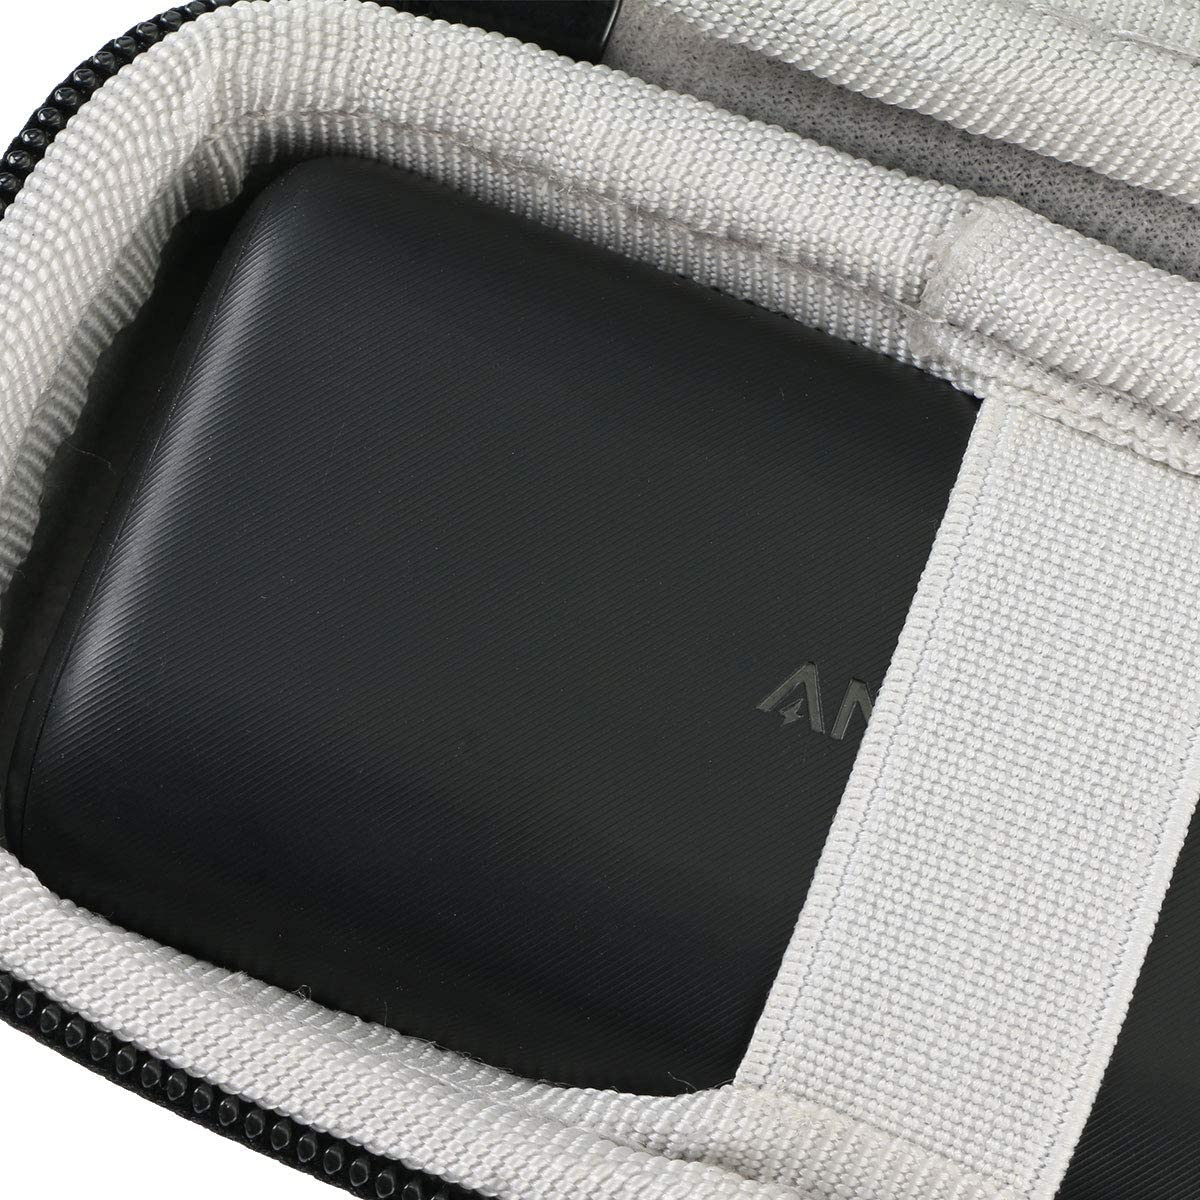 Khanka Hard Travel Case Replacement for Anker PowerCore 10000 PD 10000 PD Redux 10000mAh Portable Charger Power Bank